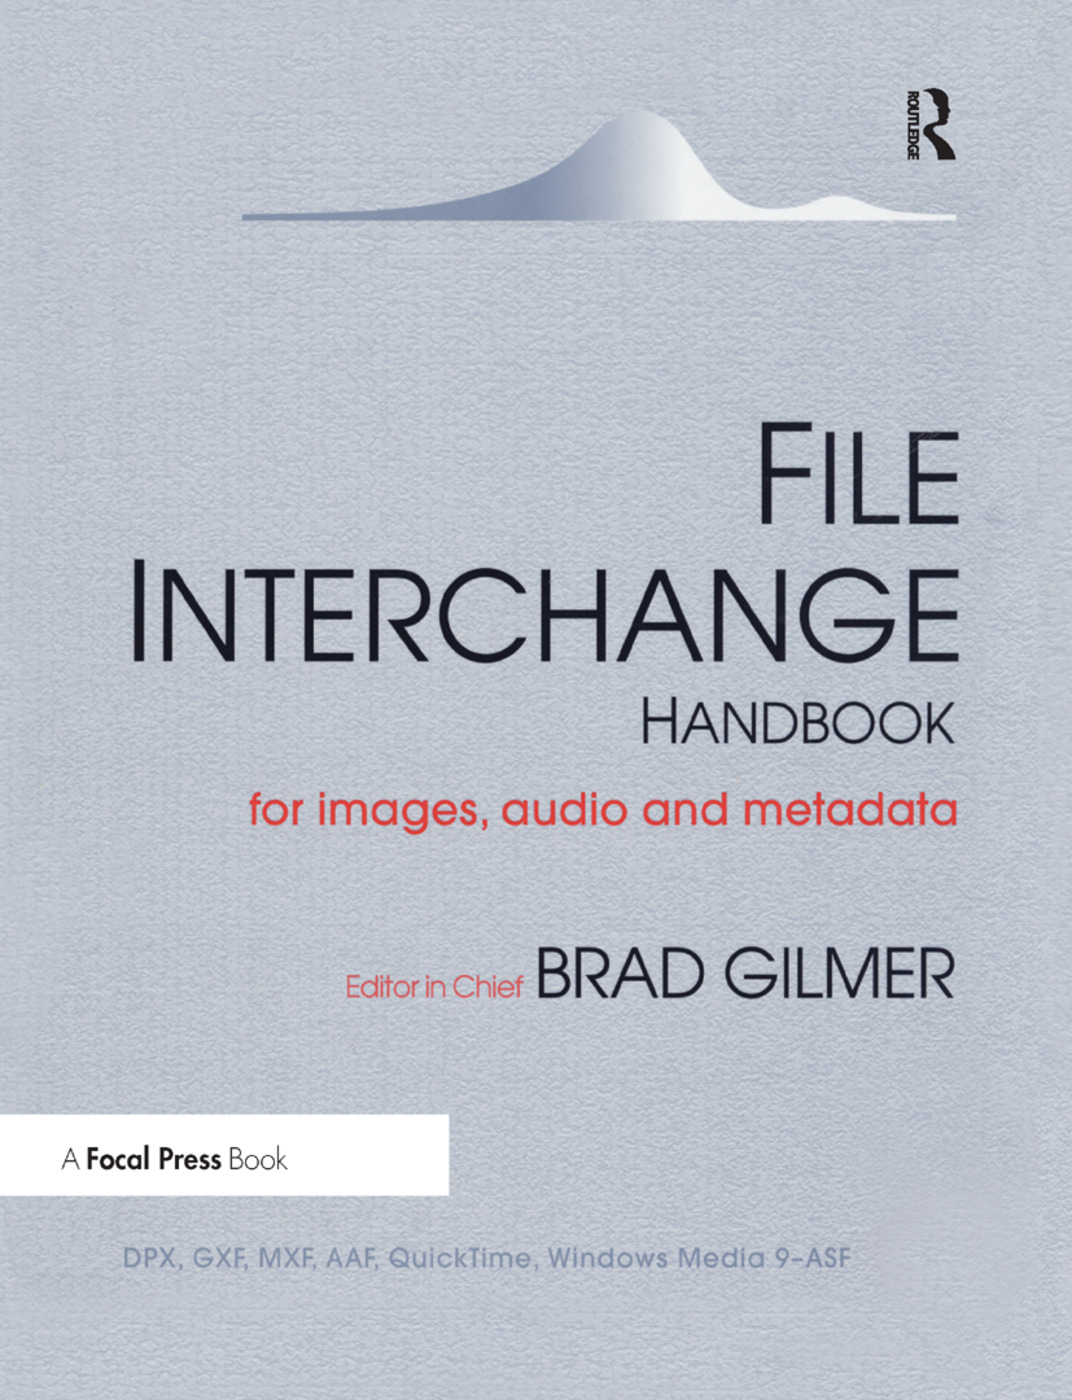 File Interchange Handbook: For professional images, audio and metadata book cover